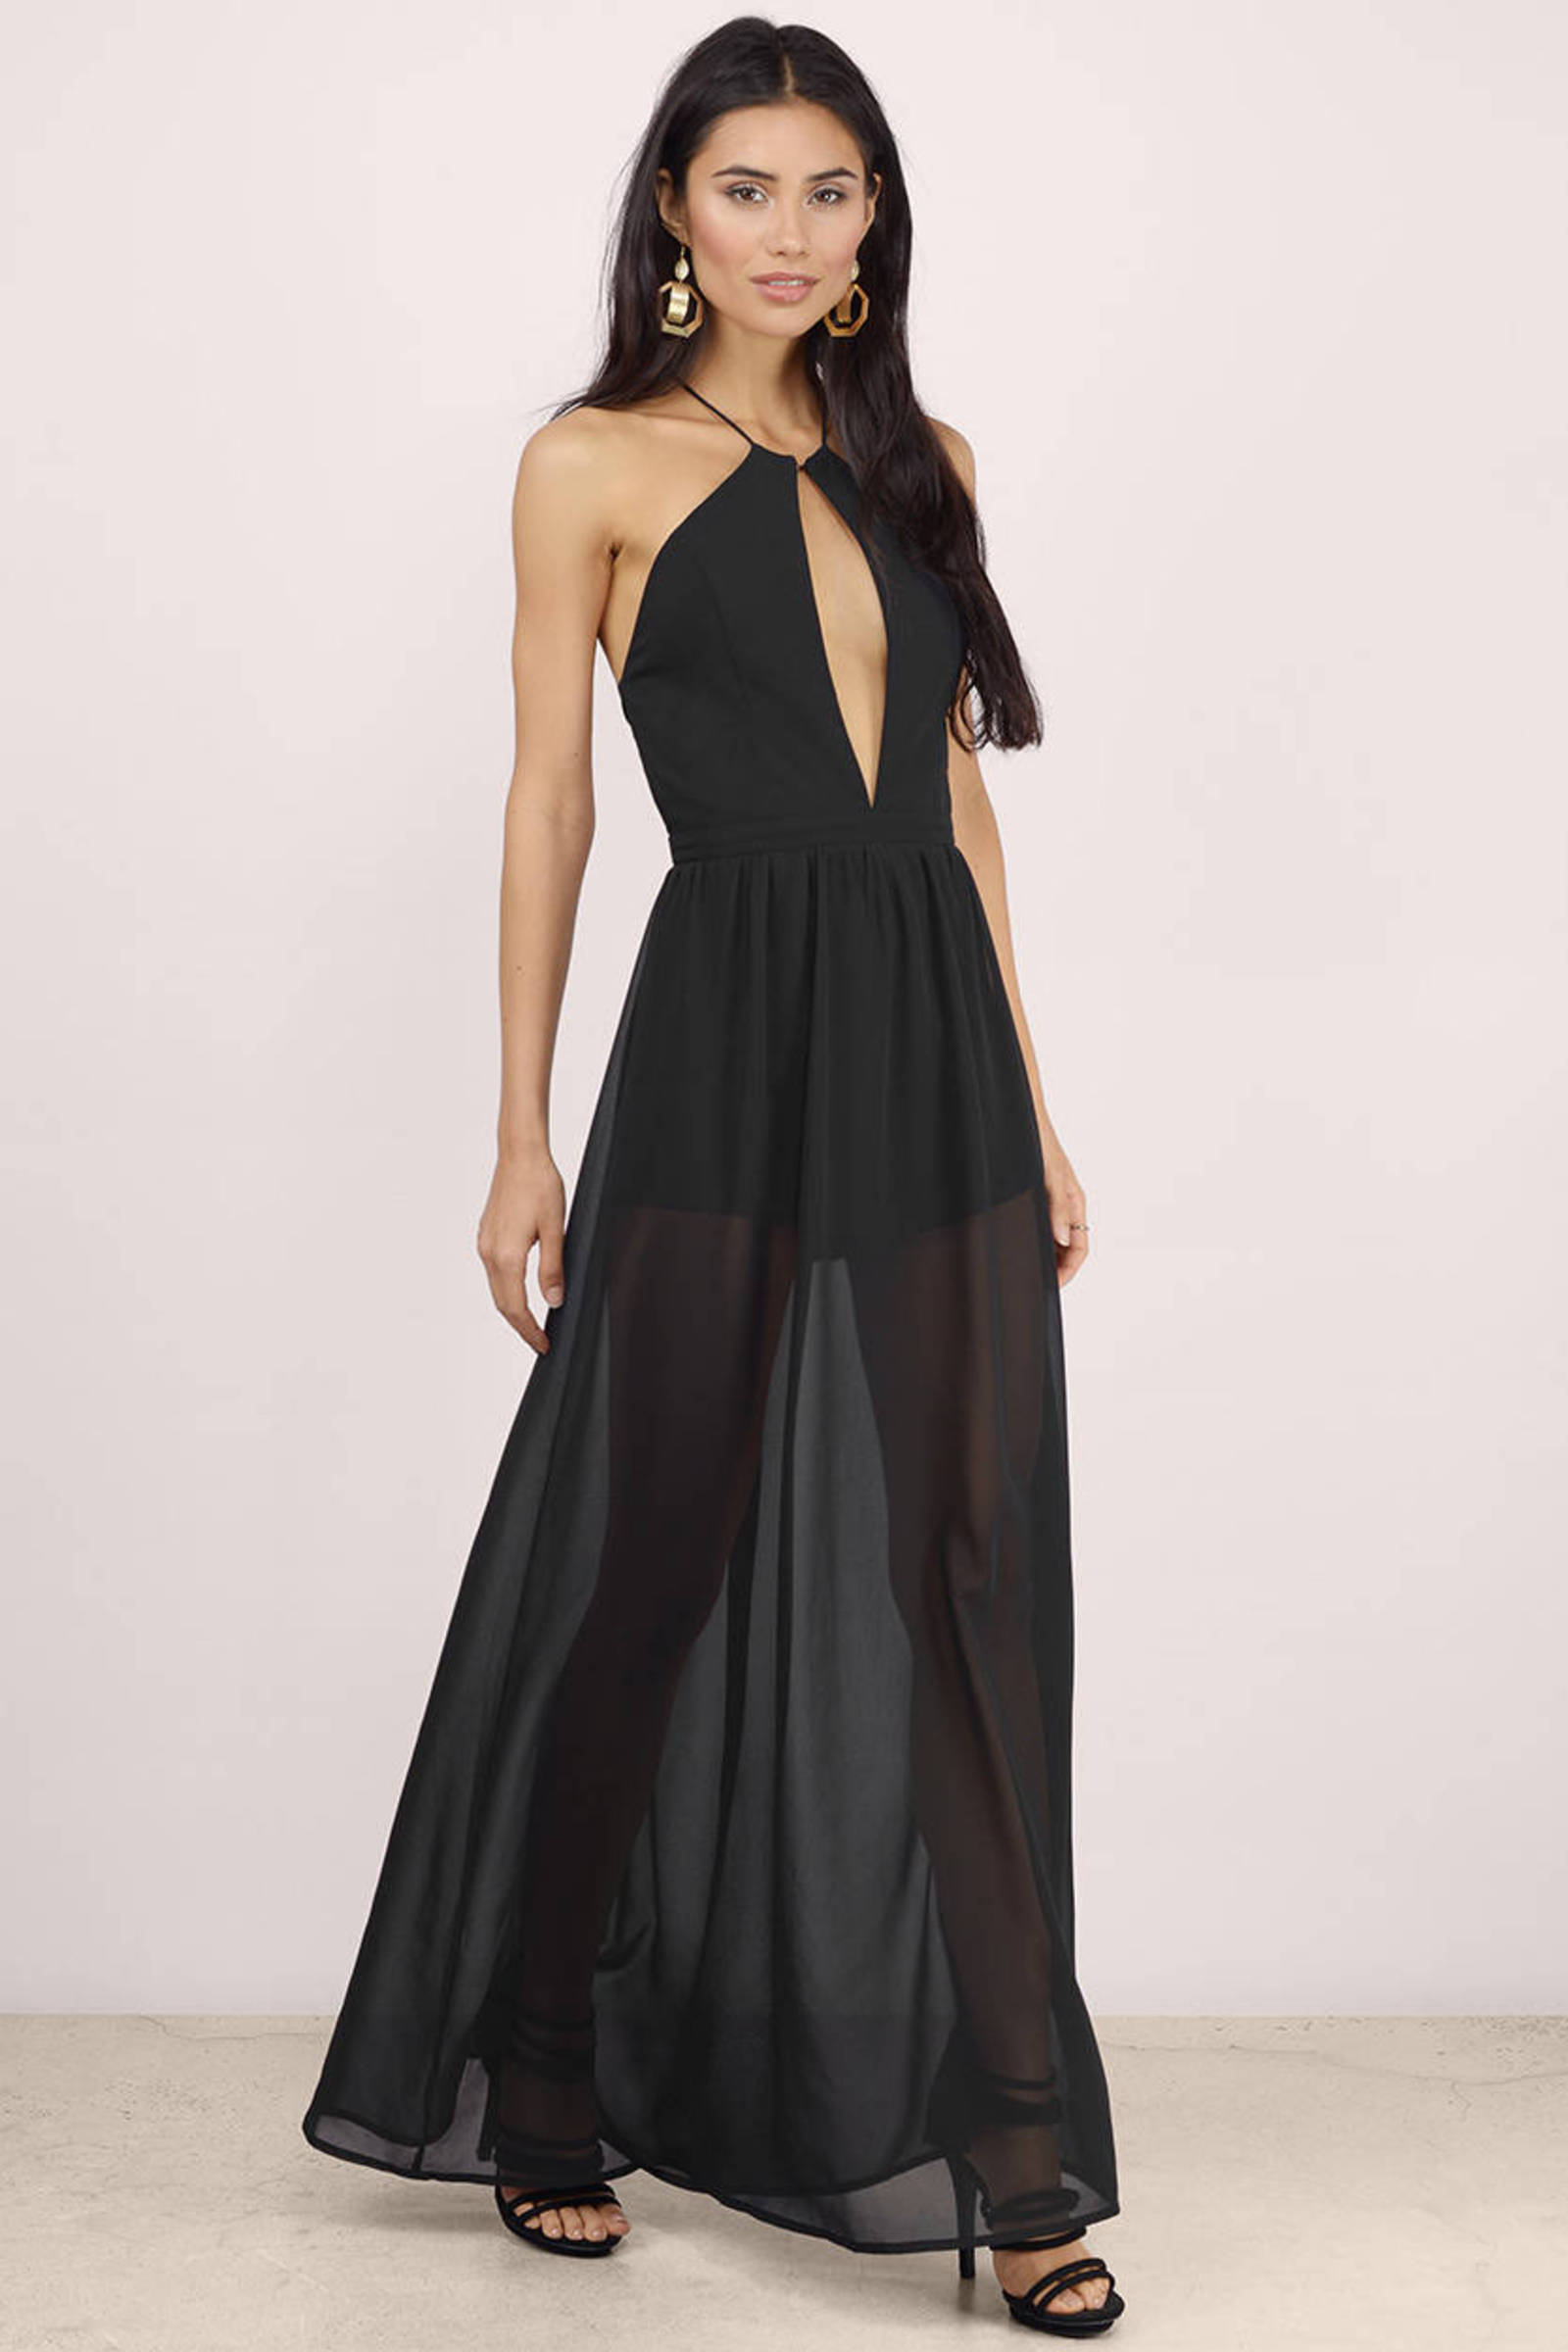 A French Affair Sheer Maxi Dress - $14.00 | Tobi